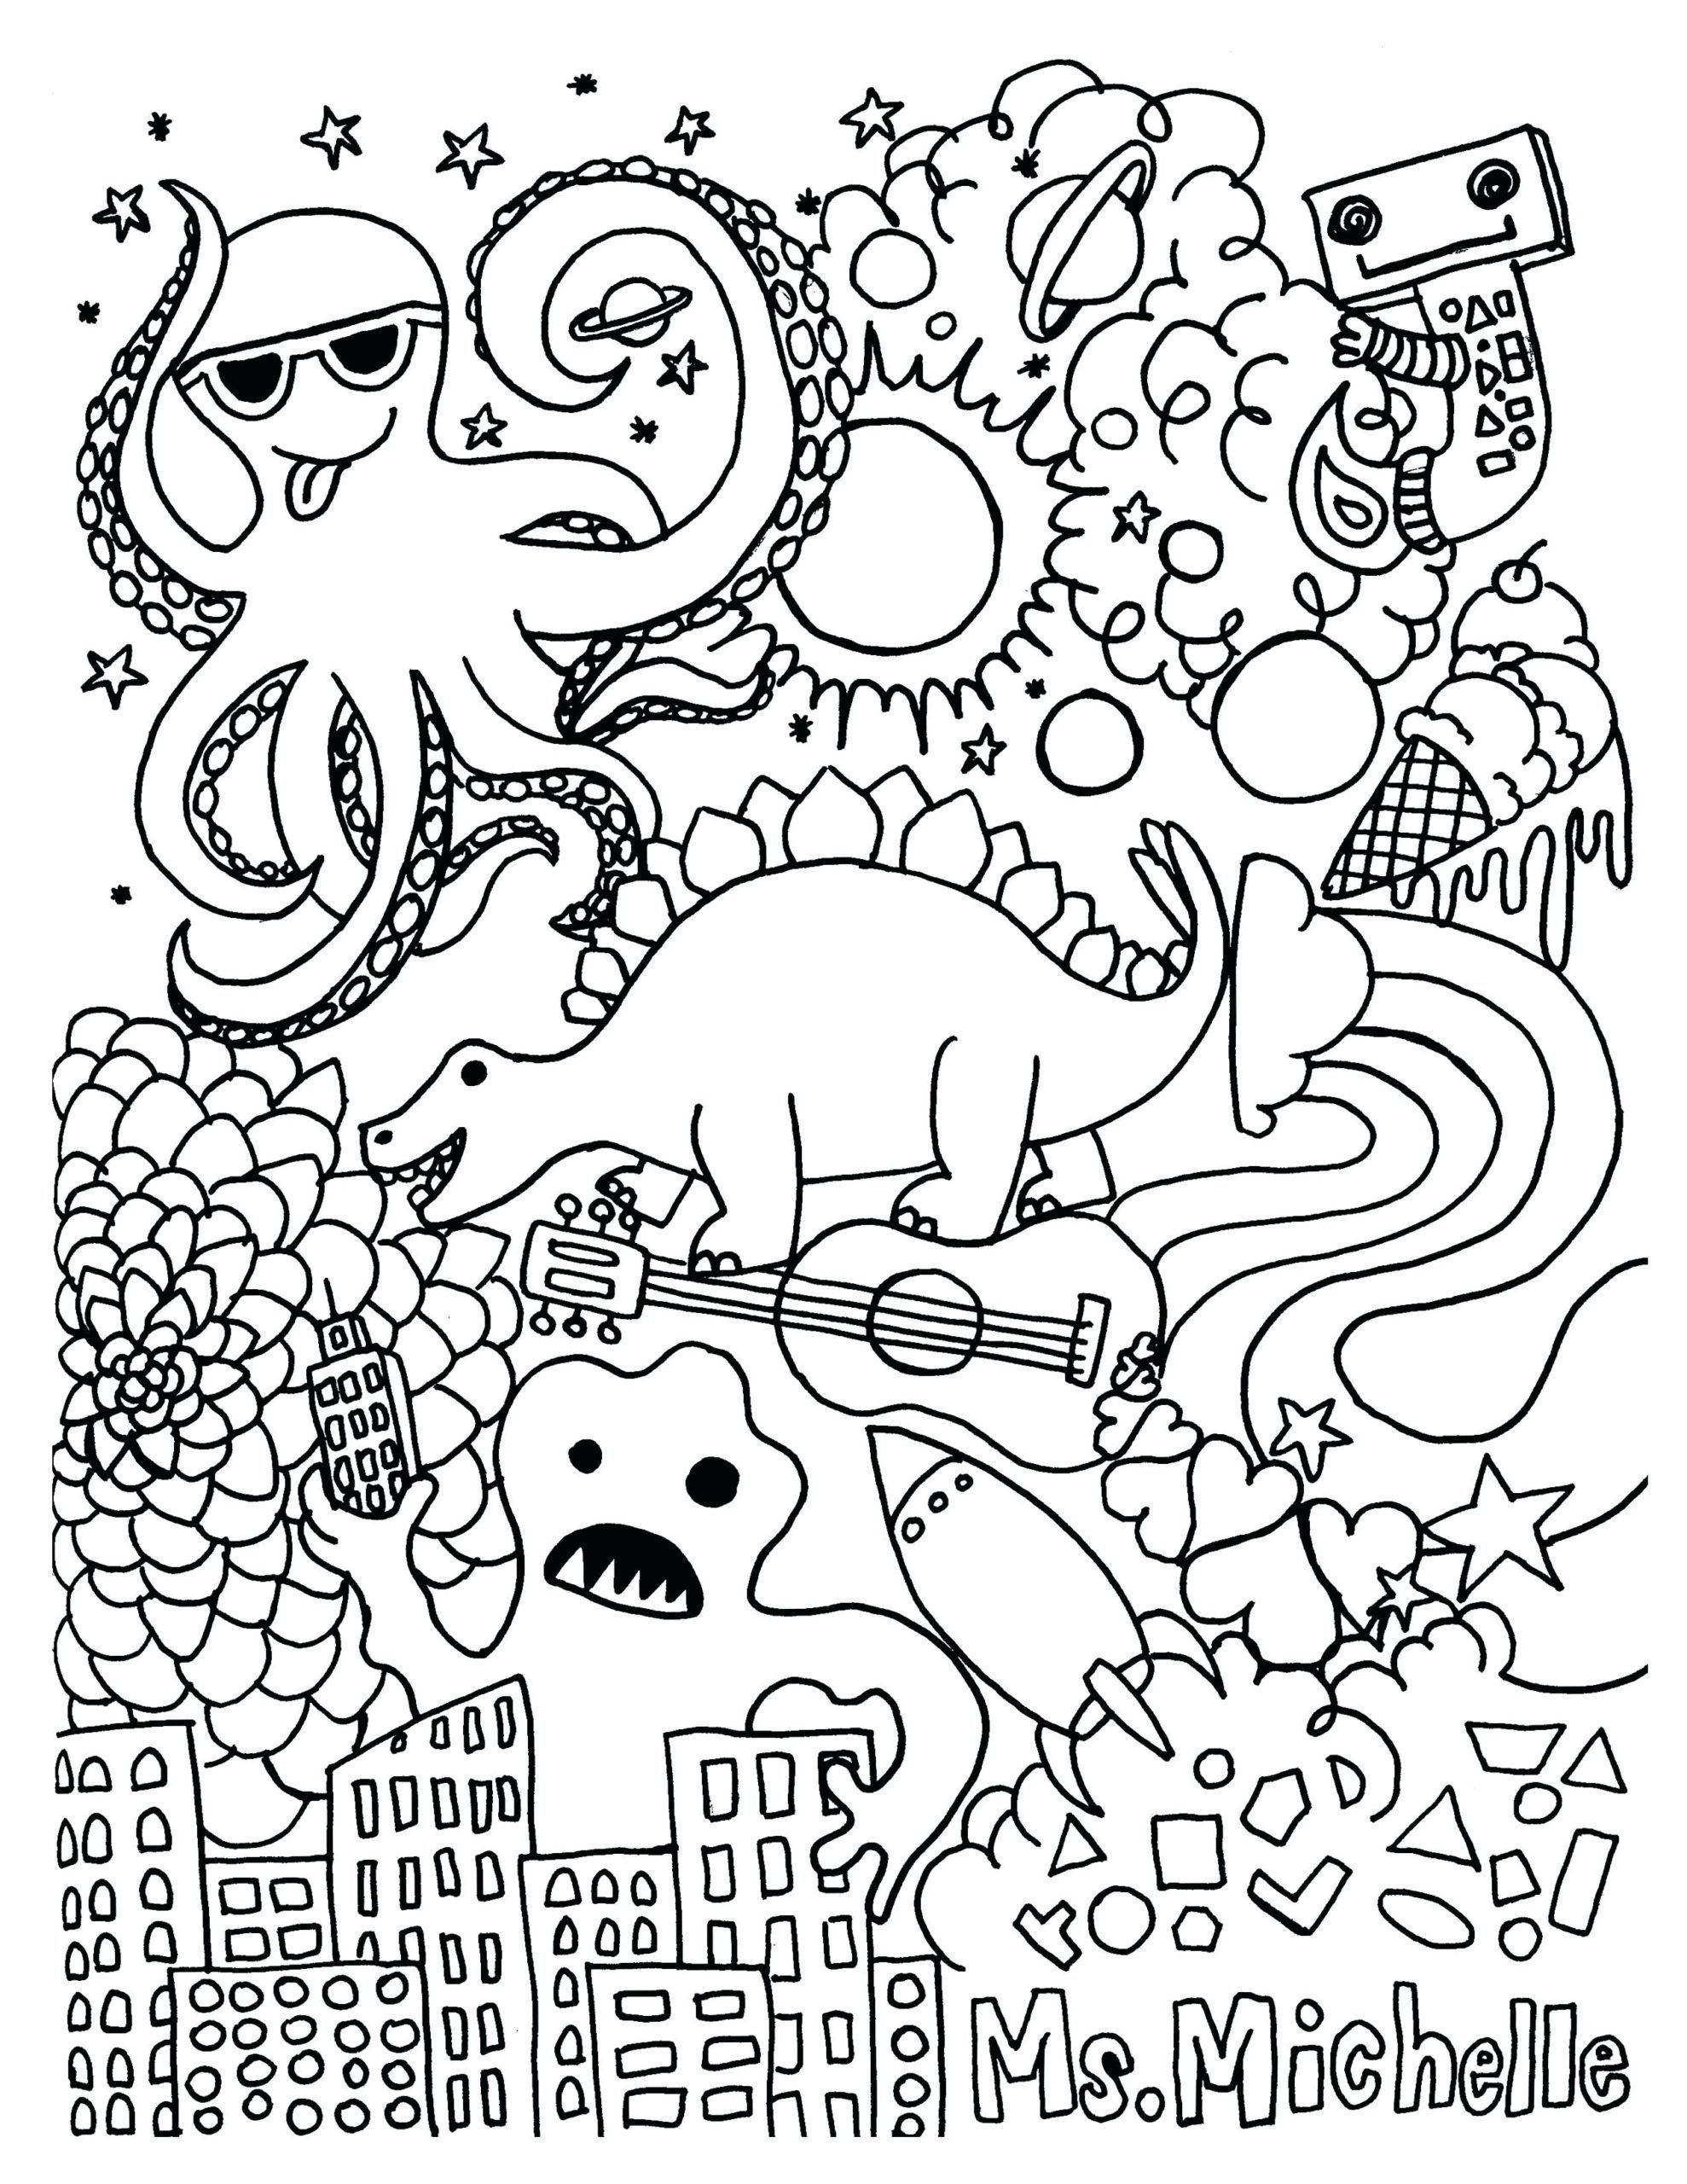 Coloring Books For Adults With Dementia Coloring Pages Coloring For Kids Fun Printabl Coloring Pages Inspirational Mandala Coloring Pages Disney Coloring Pages